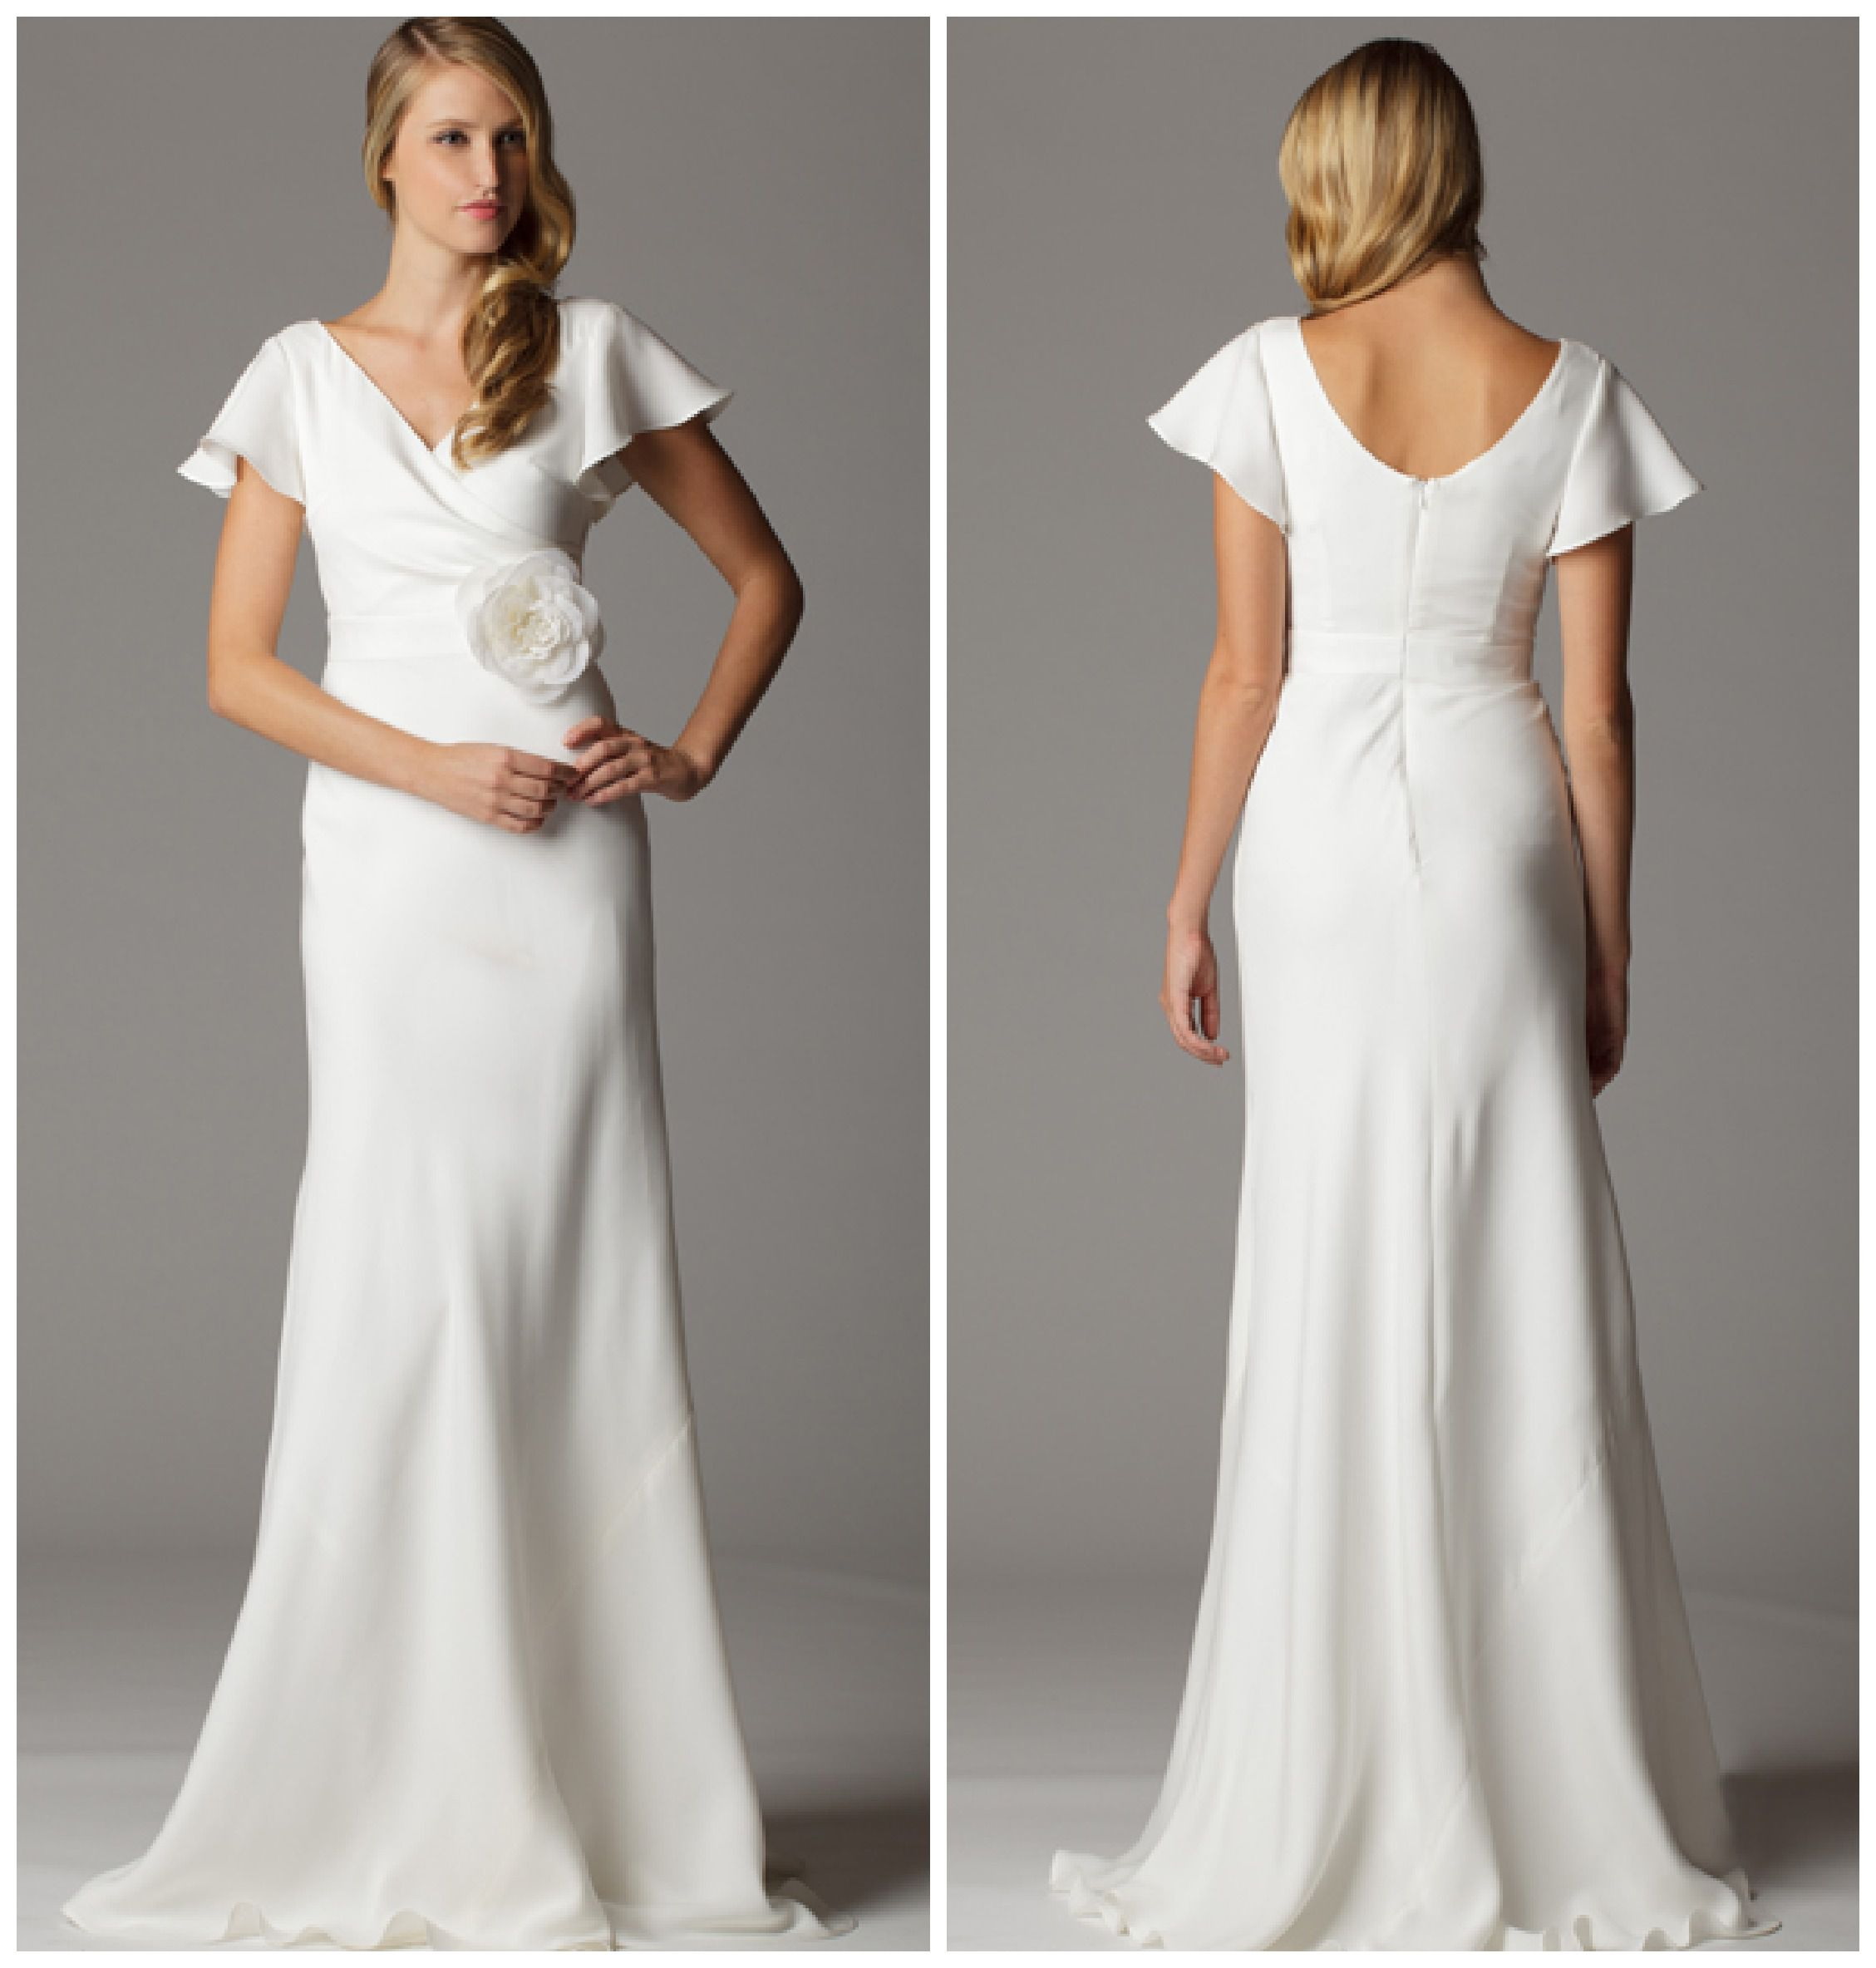 Popular Wedding Gowns: Wedding Experts Pick For Top 10 Wedding Gowns